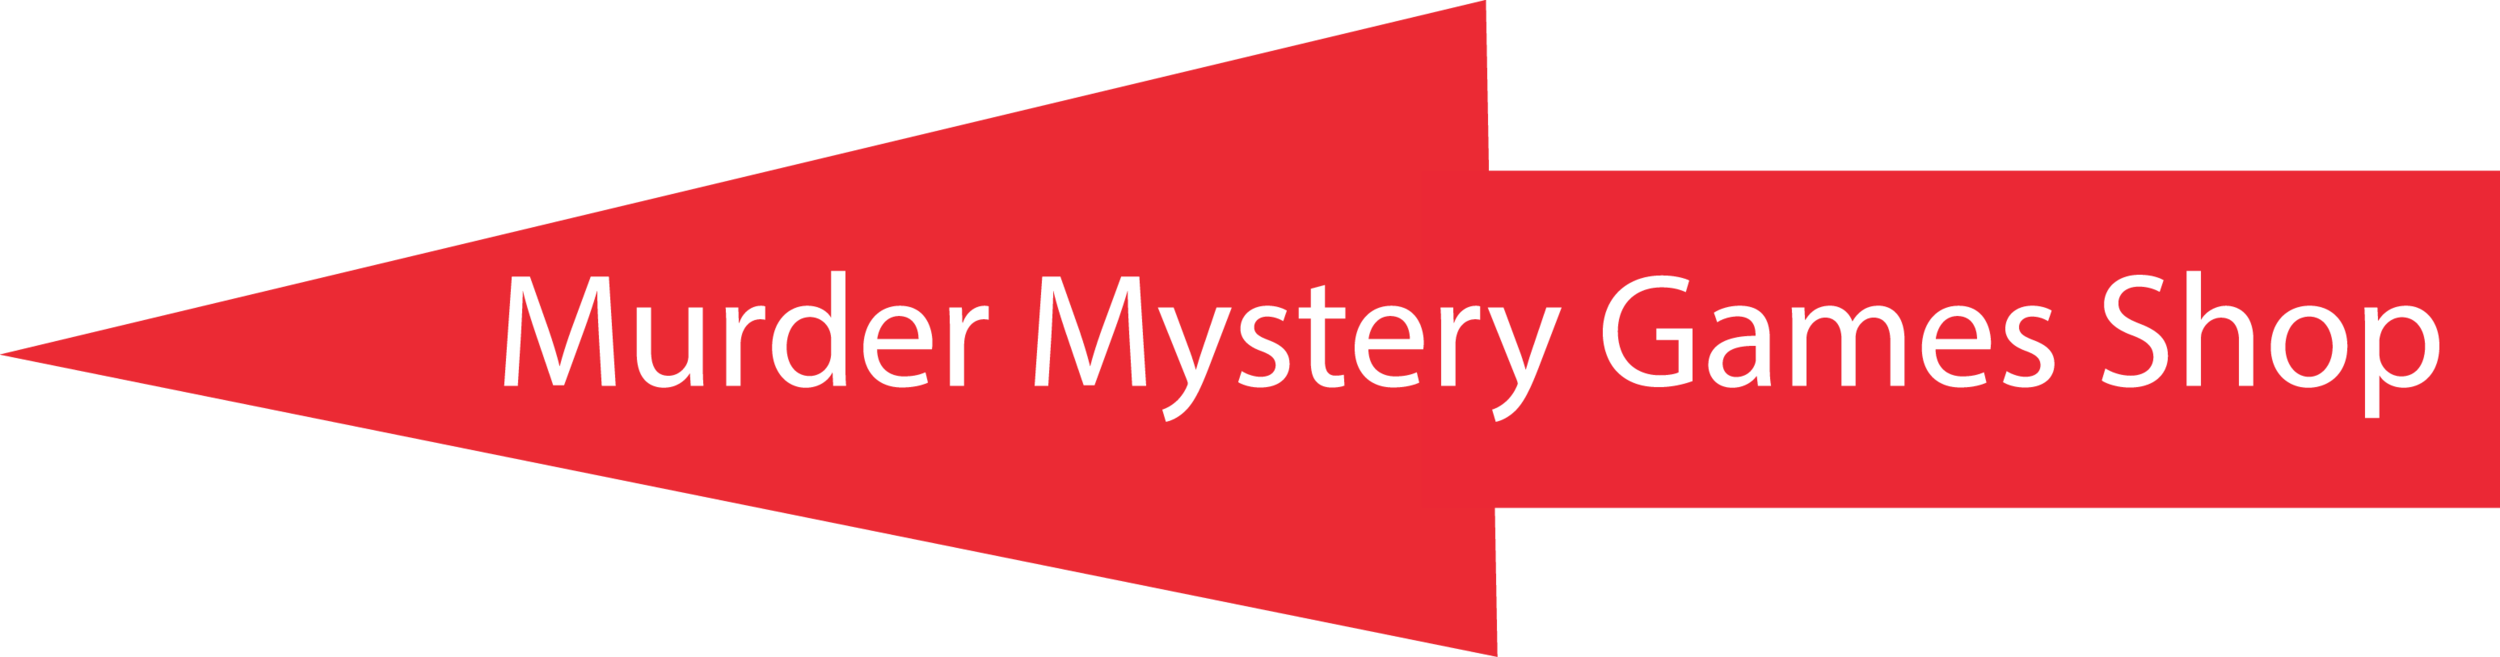 Arrow to Murder Mystery Games Shop